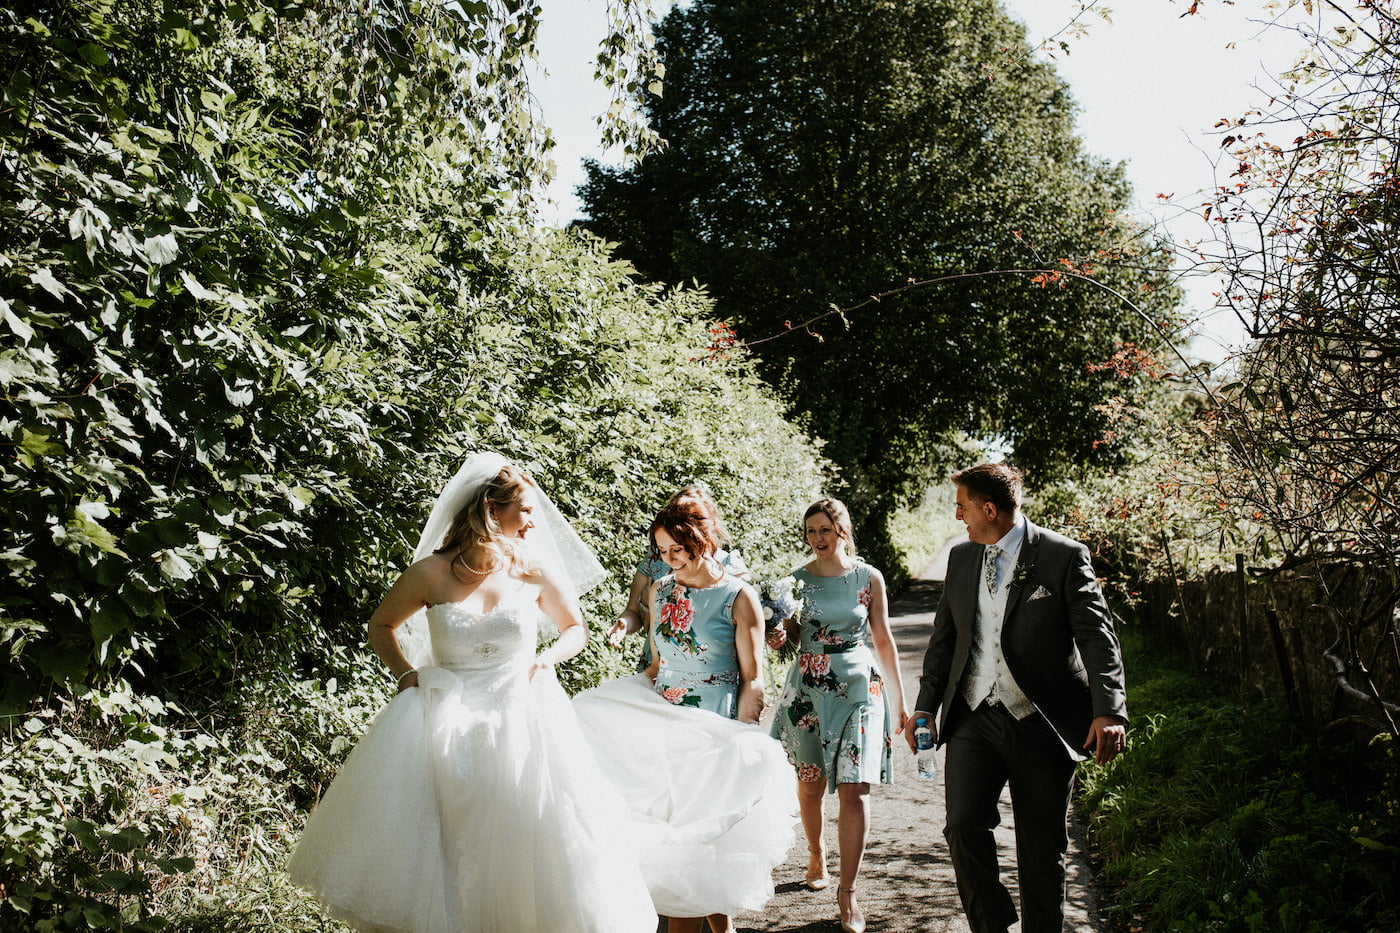 Alex and Jen, Widbrook Grange, Wiltshire 2